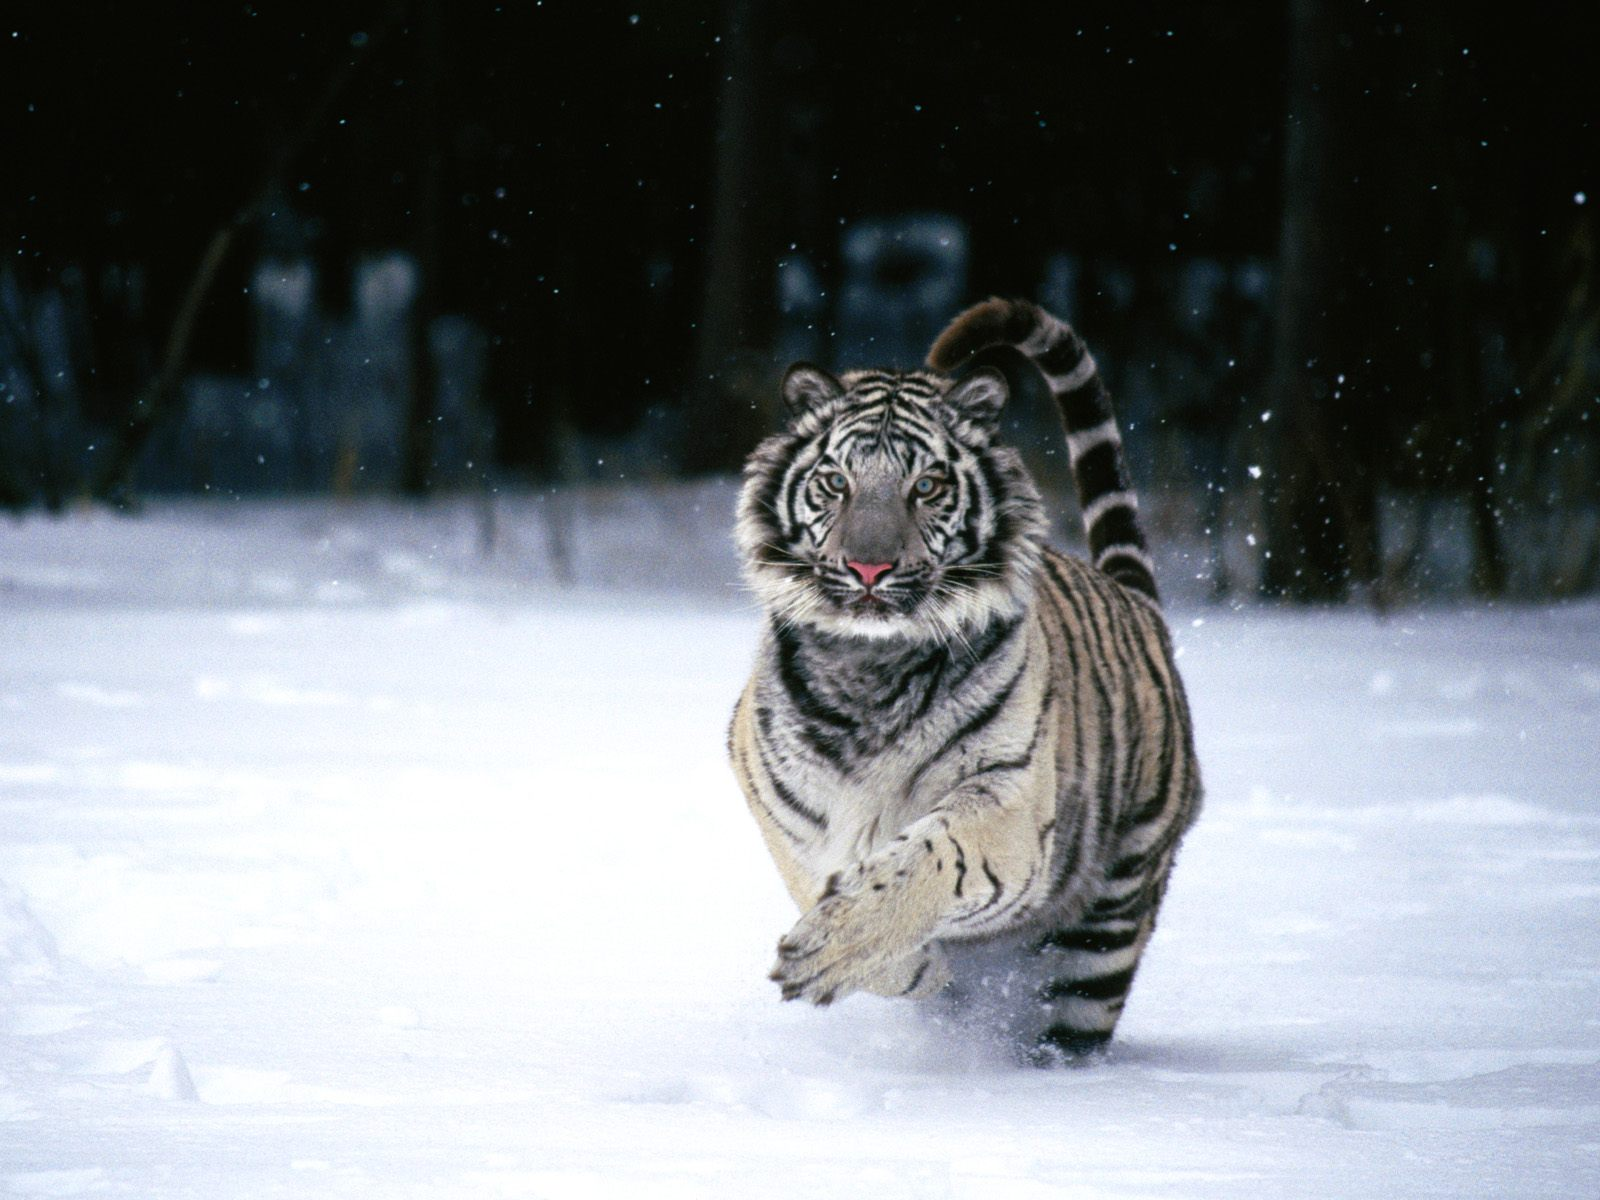 White Tiger 1219.27 Kb